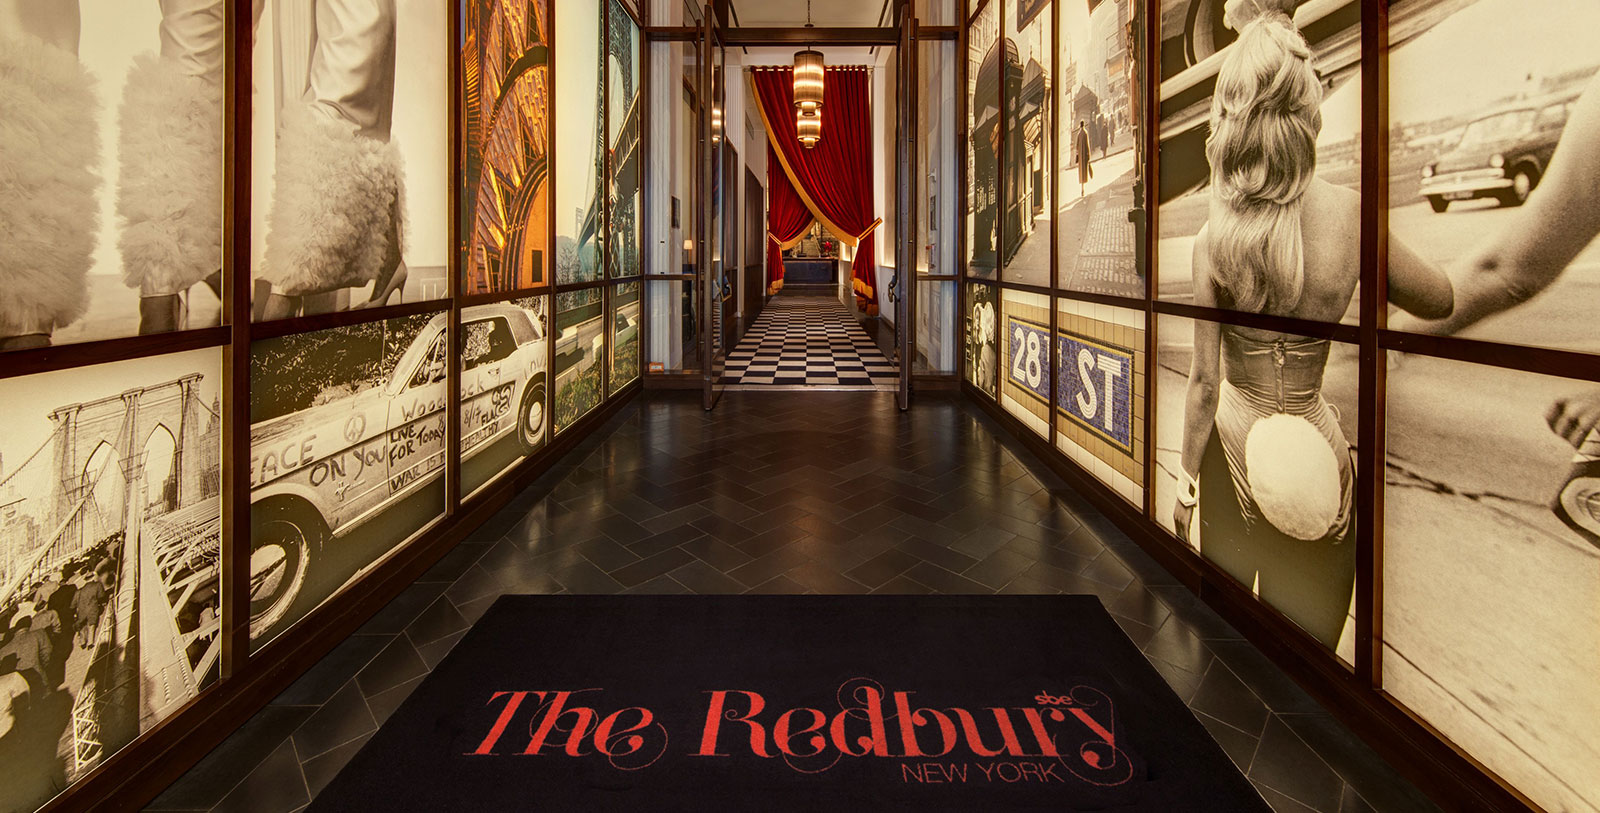 Image of Hotel Lobby Entrance The Redbury New York, 1903, Member of Historic Hotels of America, in New York, New York, Experience